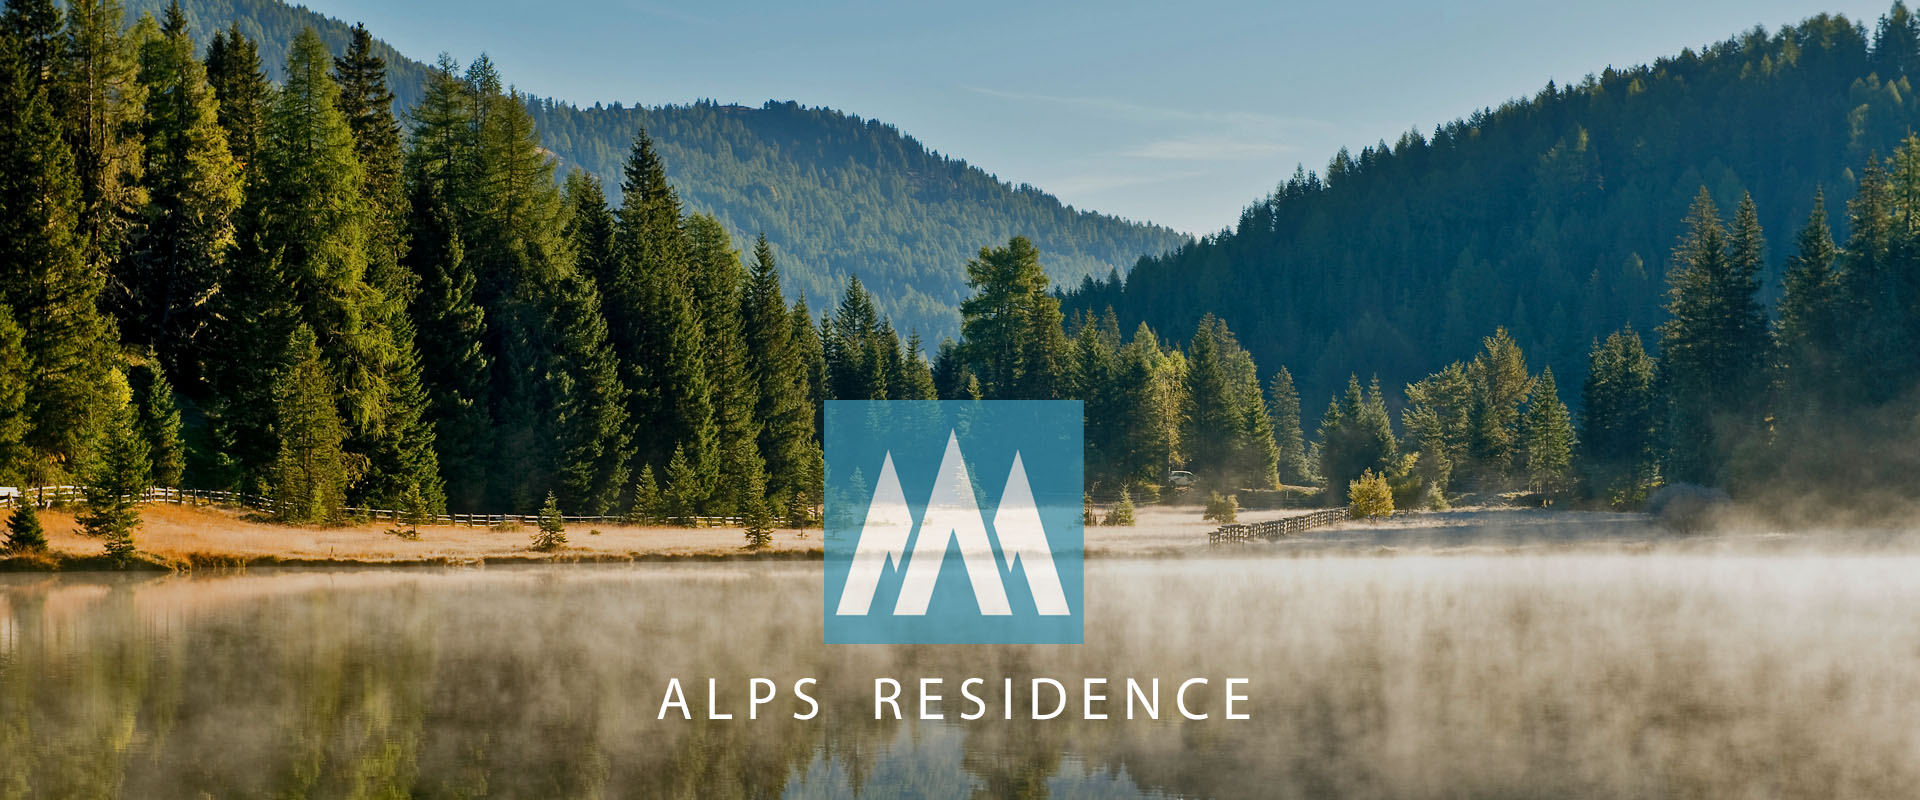 Alps Residence Appartements Carpe Solem Mariapfarr